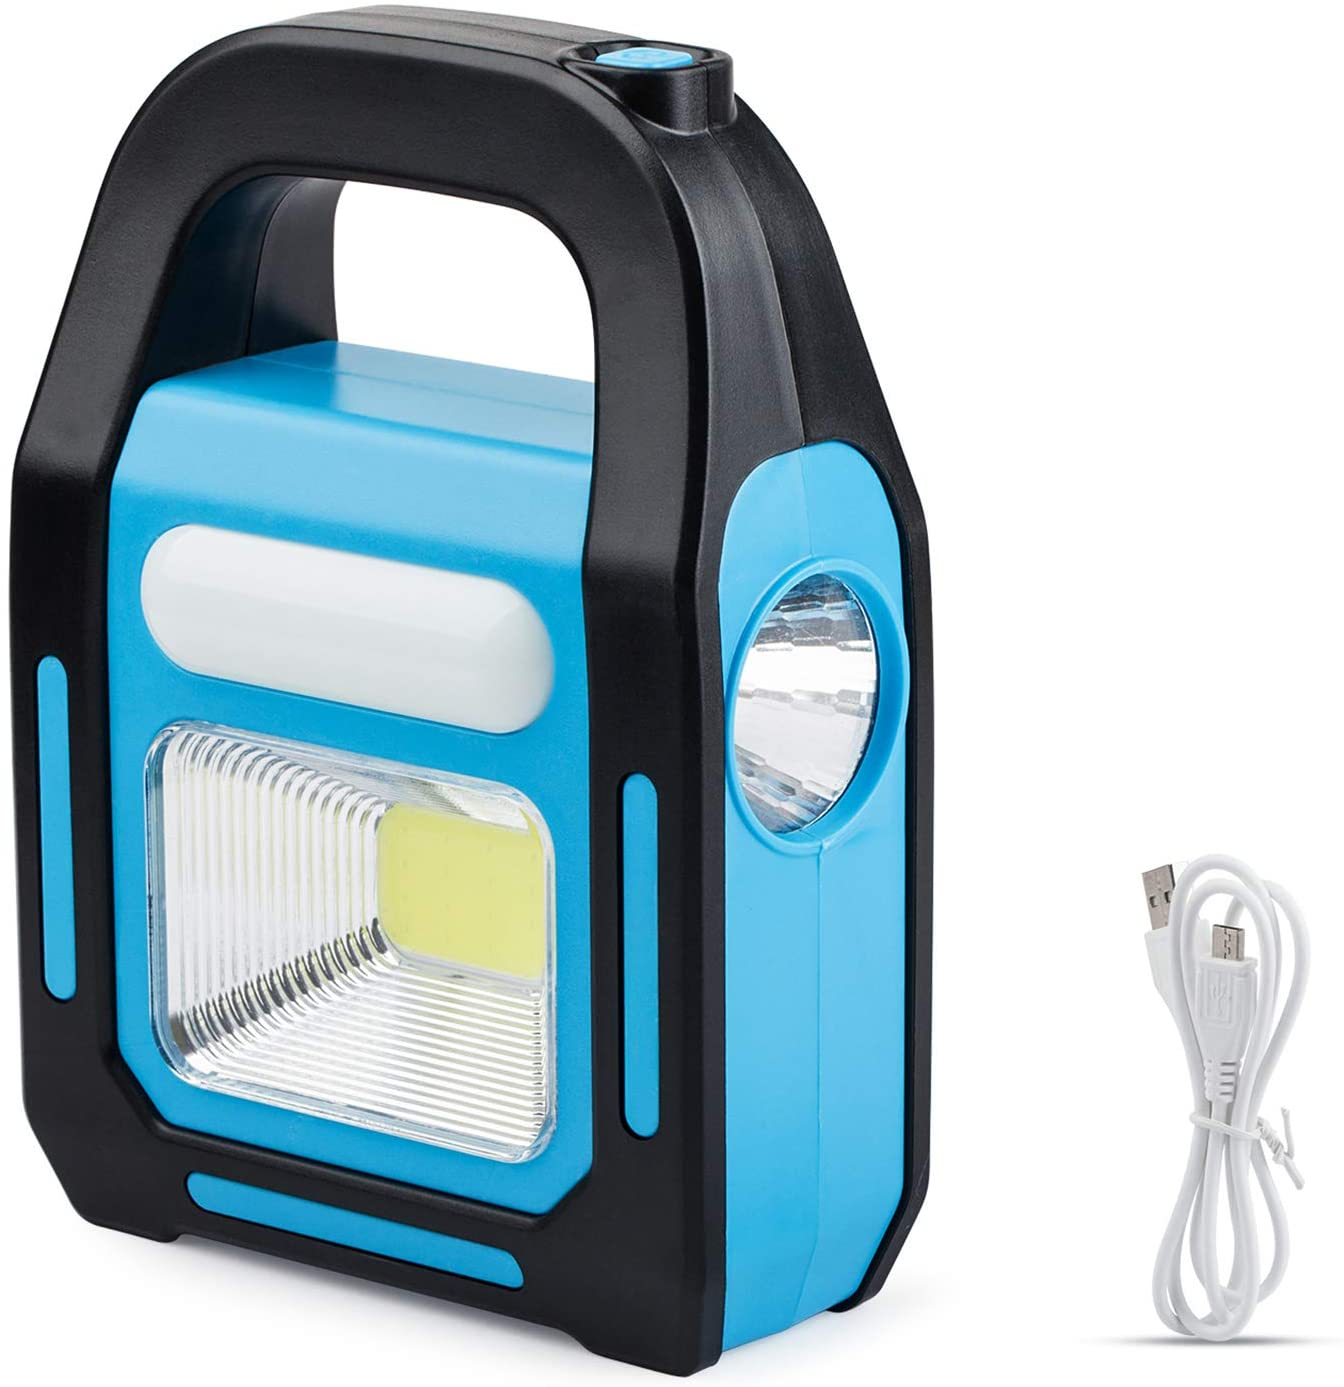 3 In 1 Handheld Solar Rechargeable Led Outdoor  Light For Camping Repairing Emergency Backup Device Style 4 (black + blue)